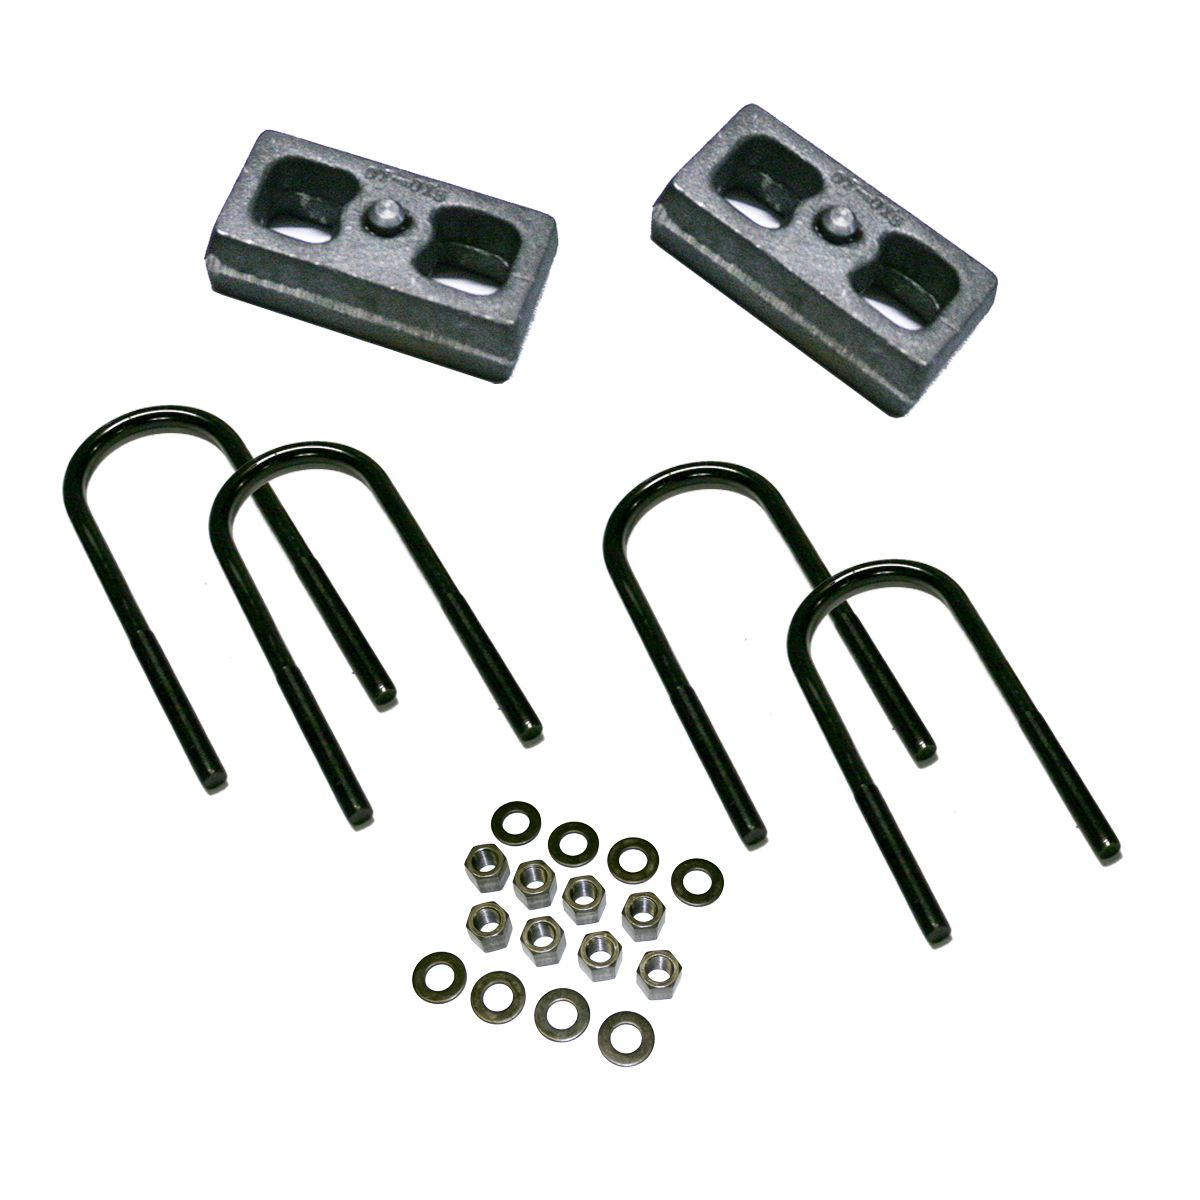 "1.5"" Rear Block Kit for 1973-87 GM 1/2 Ton Pickup and 1973-1991 Suburban, Jimmy, and Blazer"